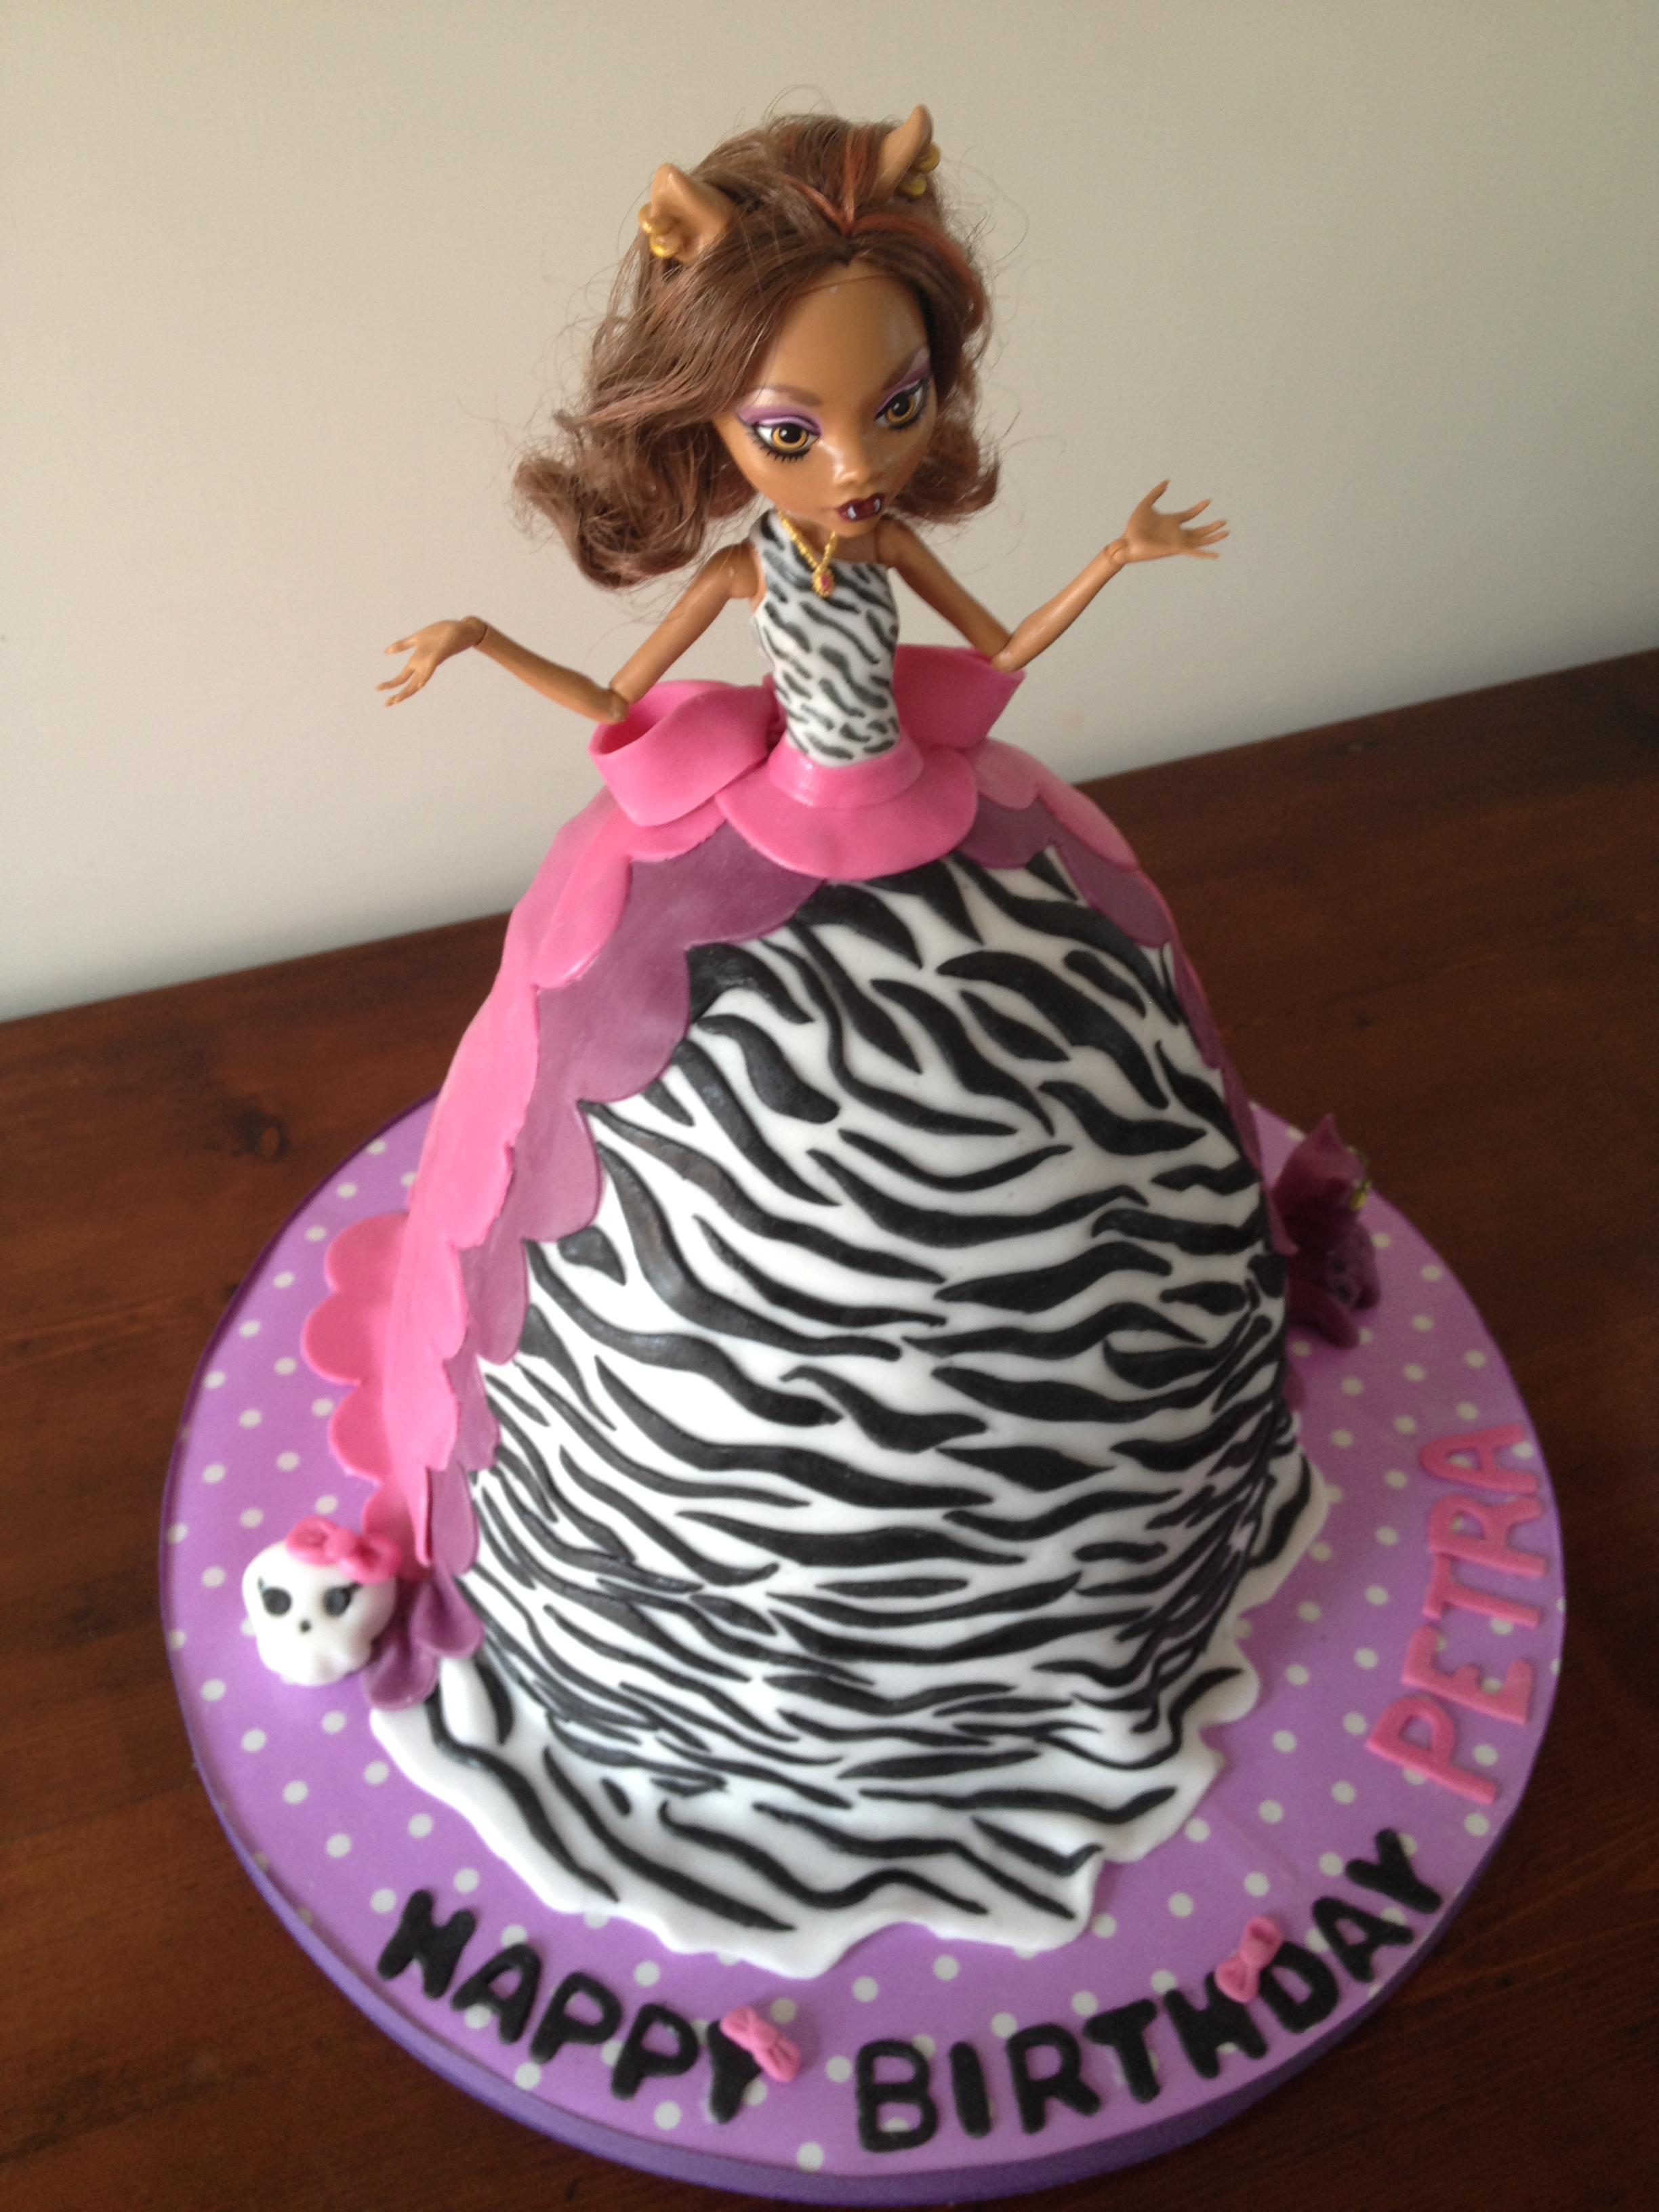 Monster High Cakes - Decoration Ideas | Little Birthday Cakes